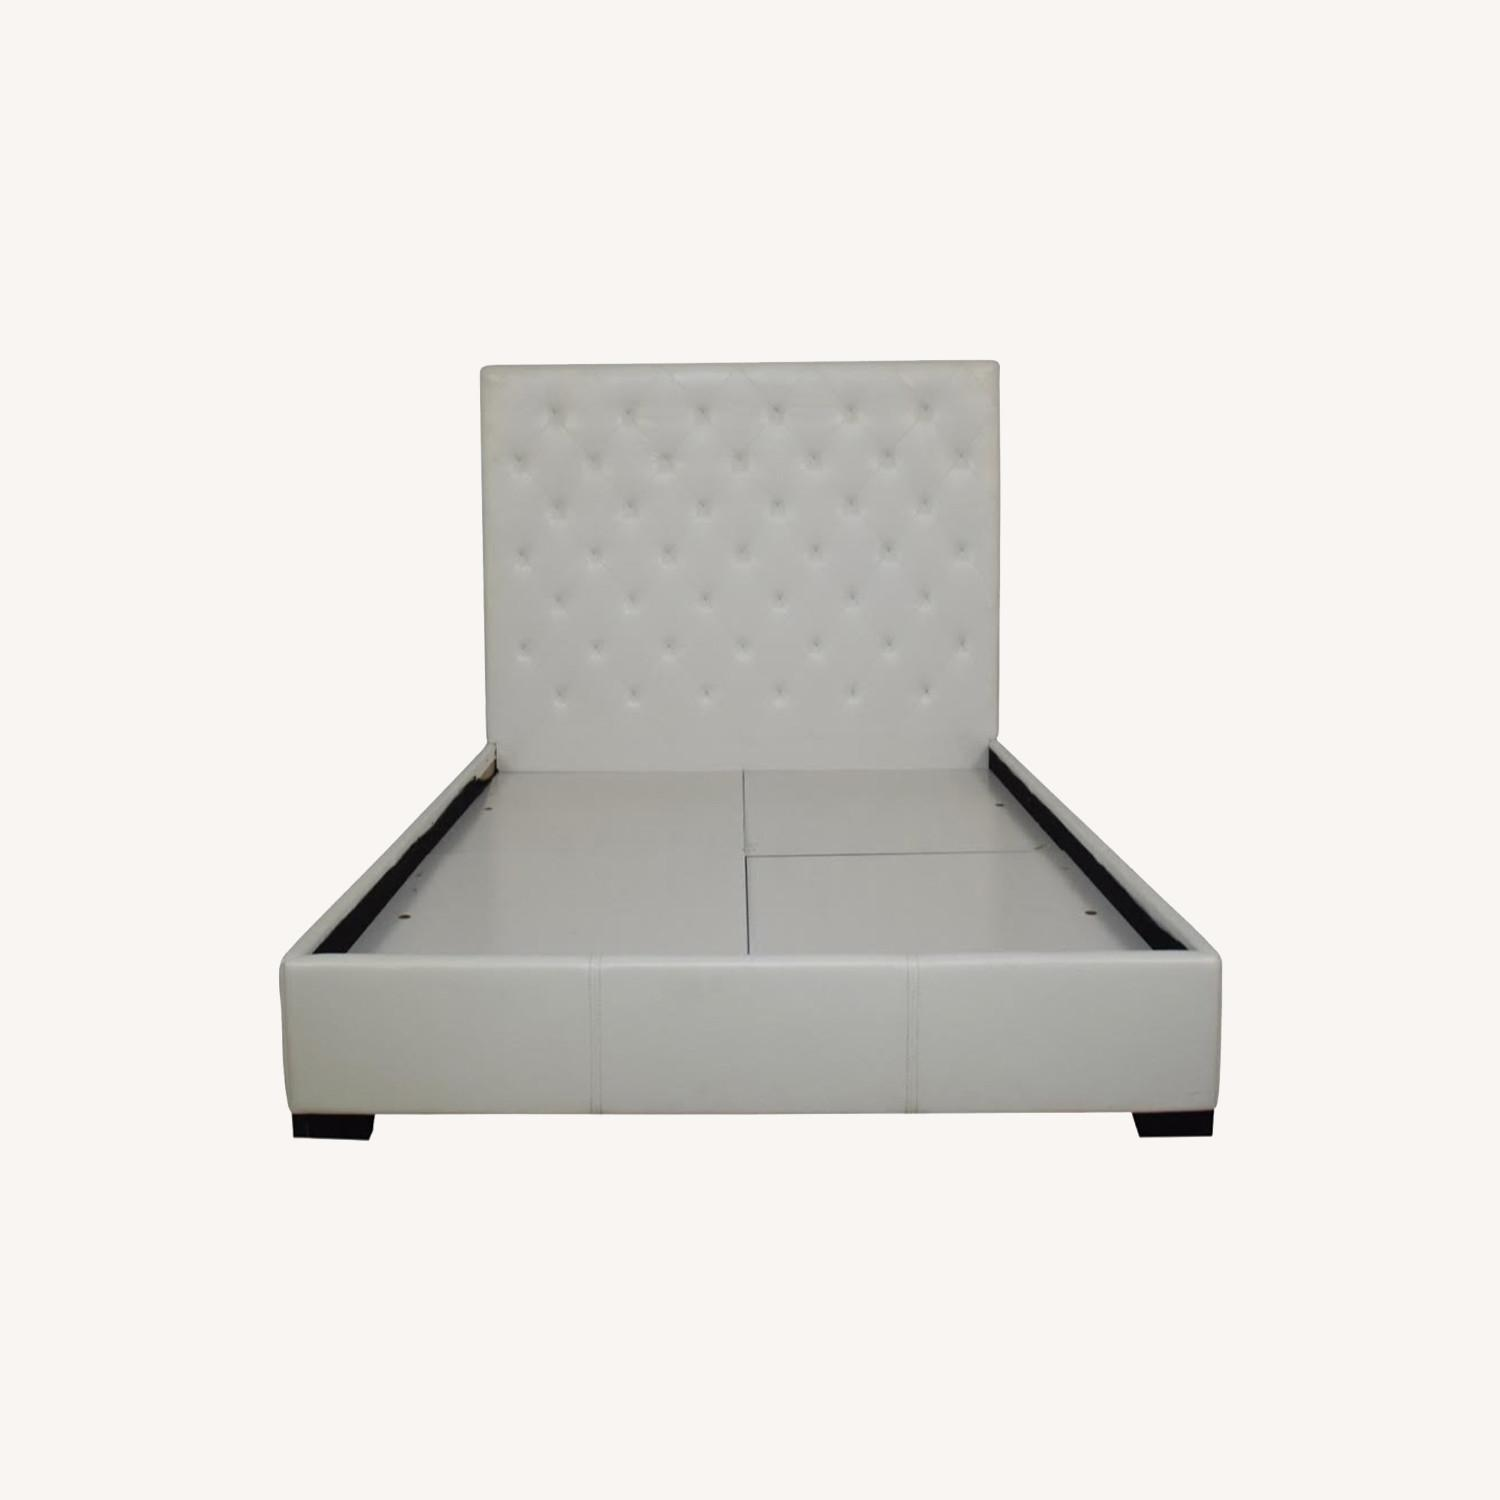 Modani Queen White Leather Headboard and Frame - image-0